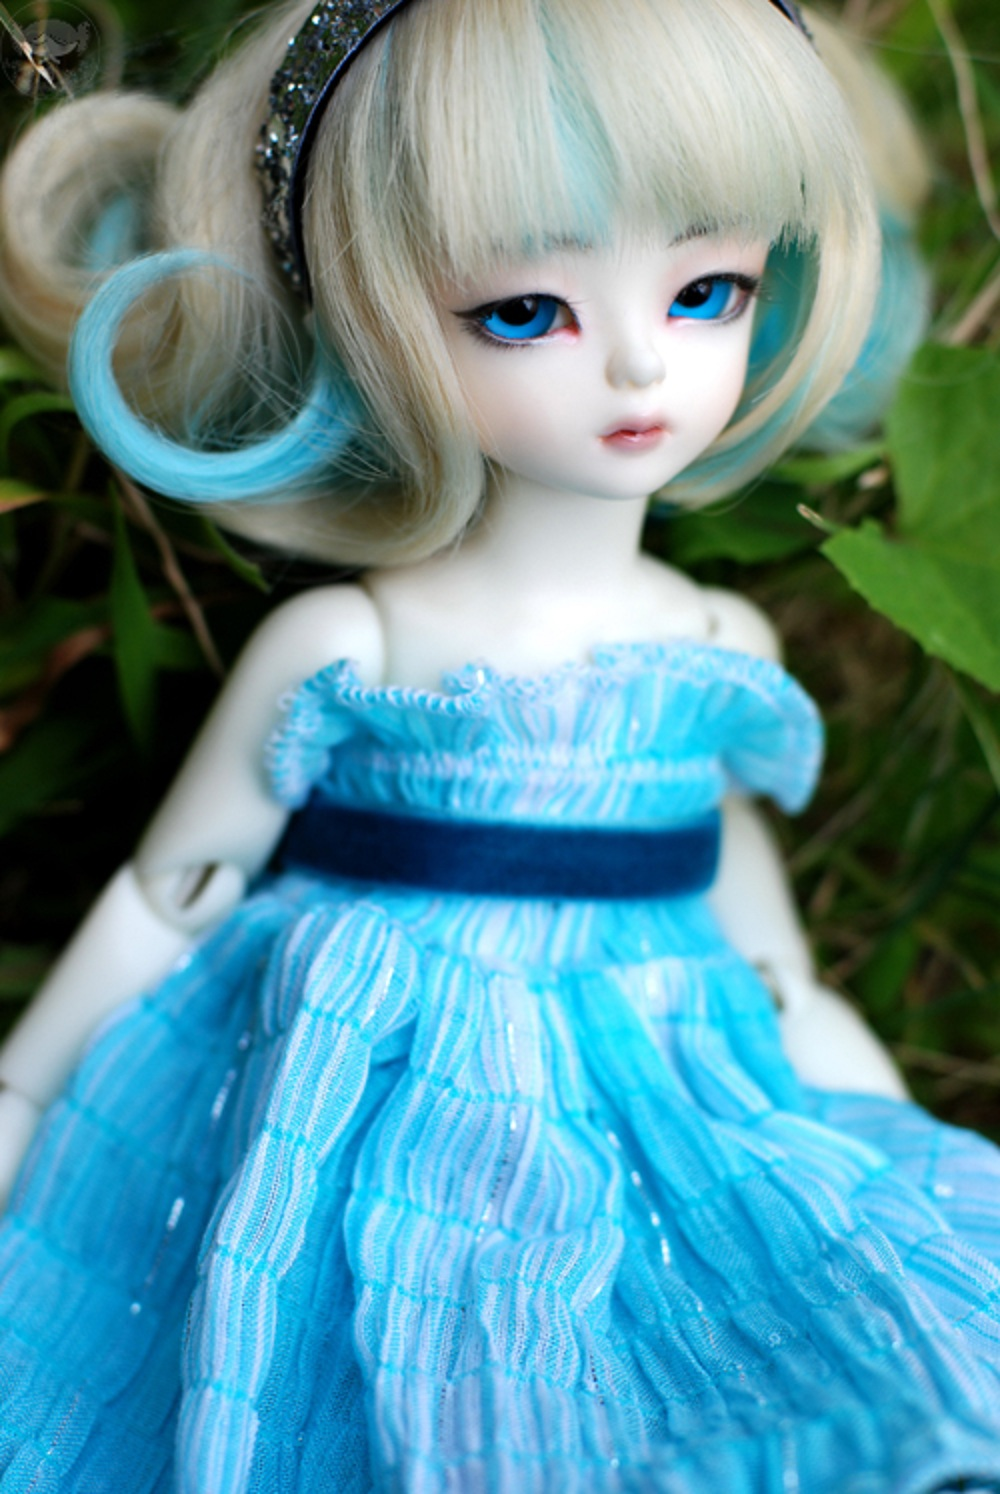 Love Baby Doll Wallpaper : cute baby doll wallpapers - DriverLayer Search Engine